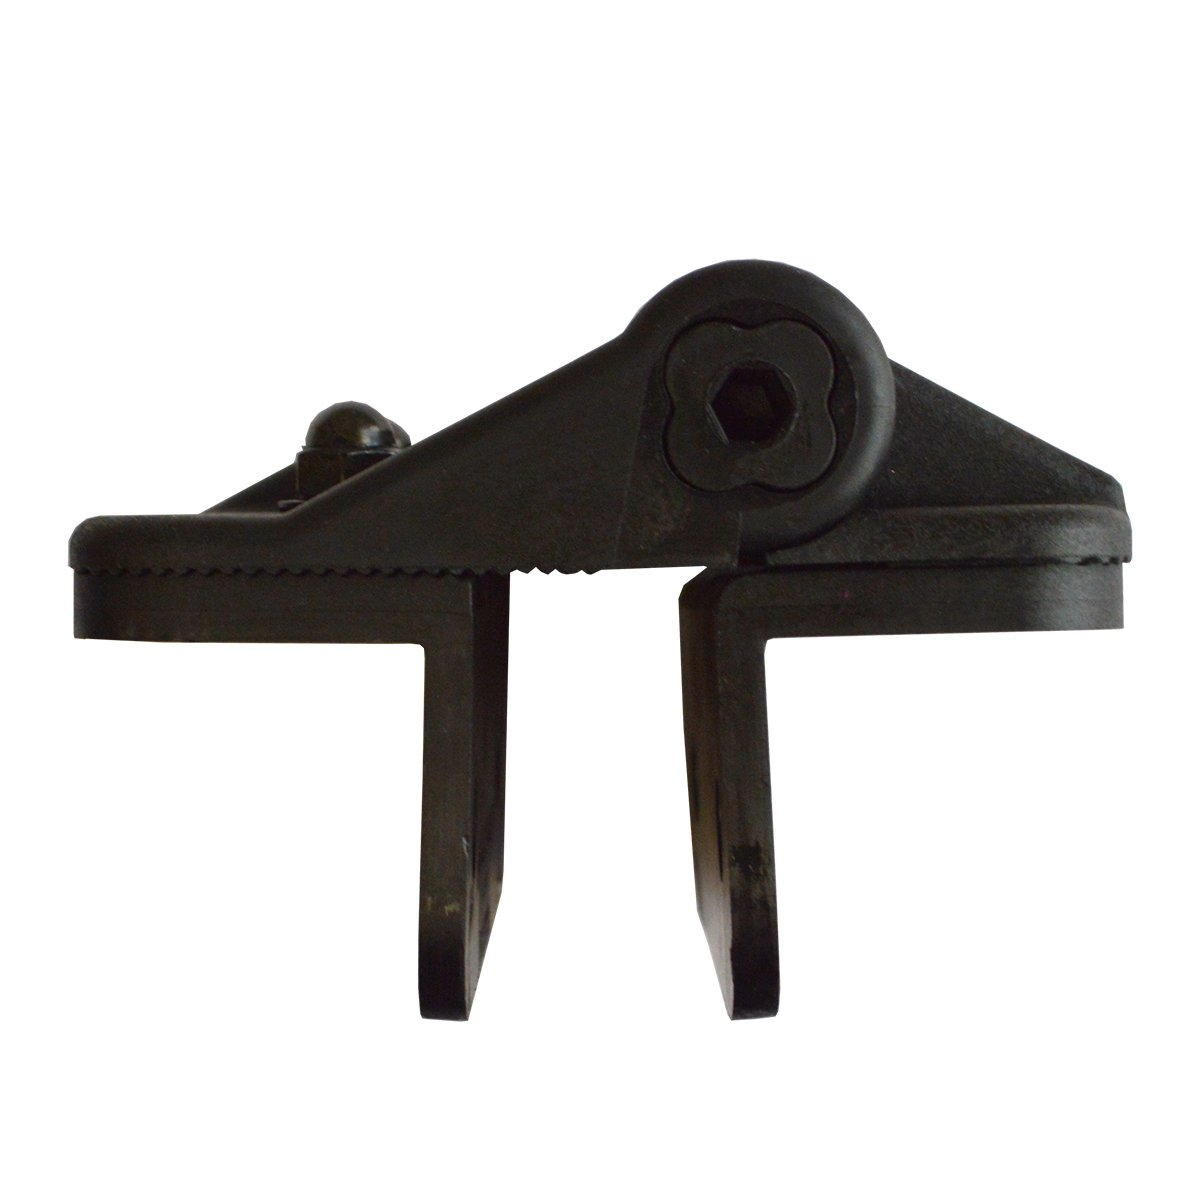 Fasteners Included Cornerstone Black Nylon Polymer Medium Size Multi Adjustable Hinges 2 Hinges Included CH200F-SD-BK